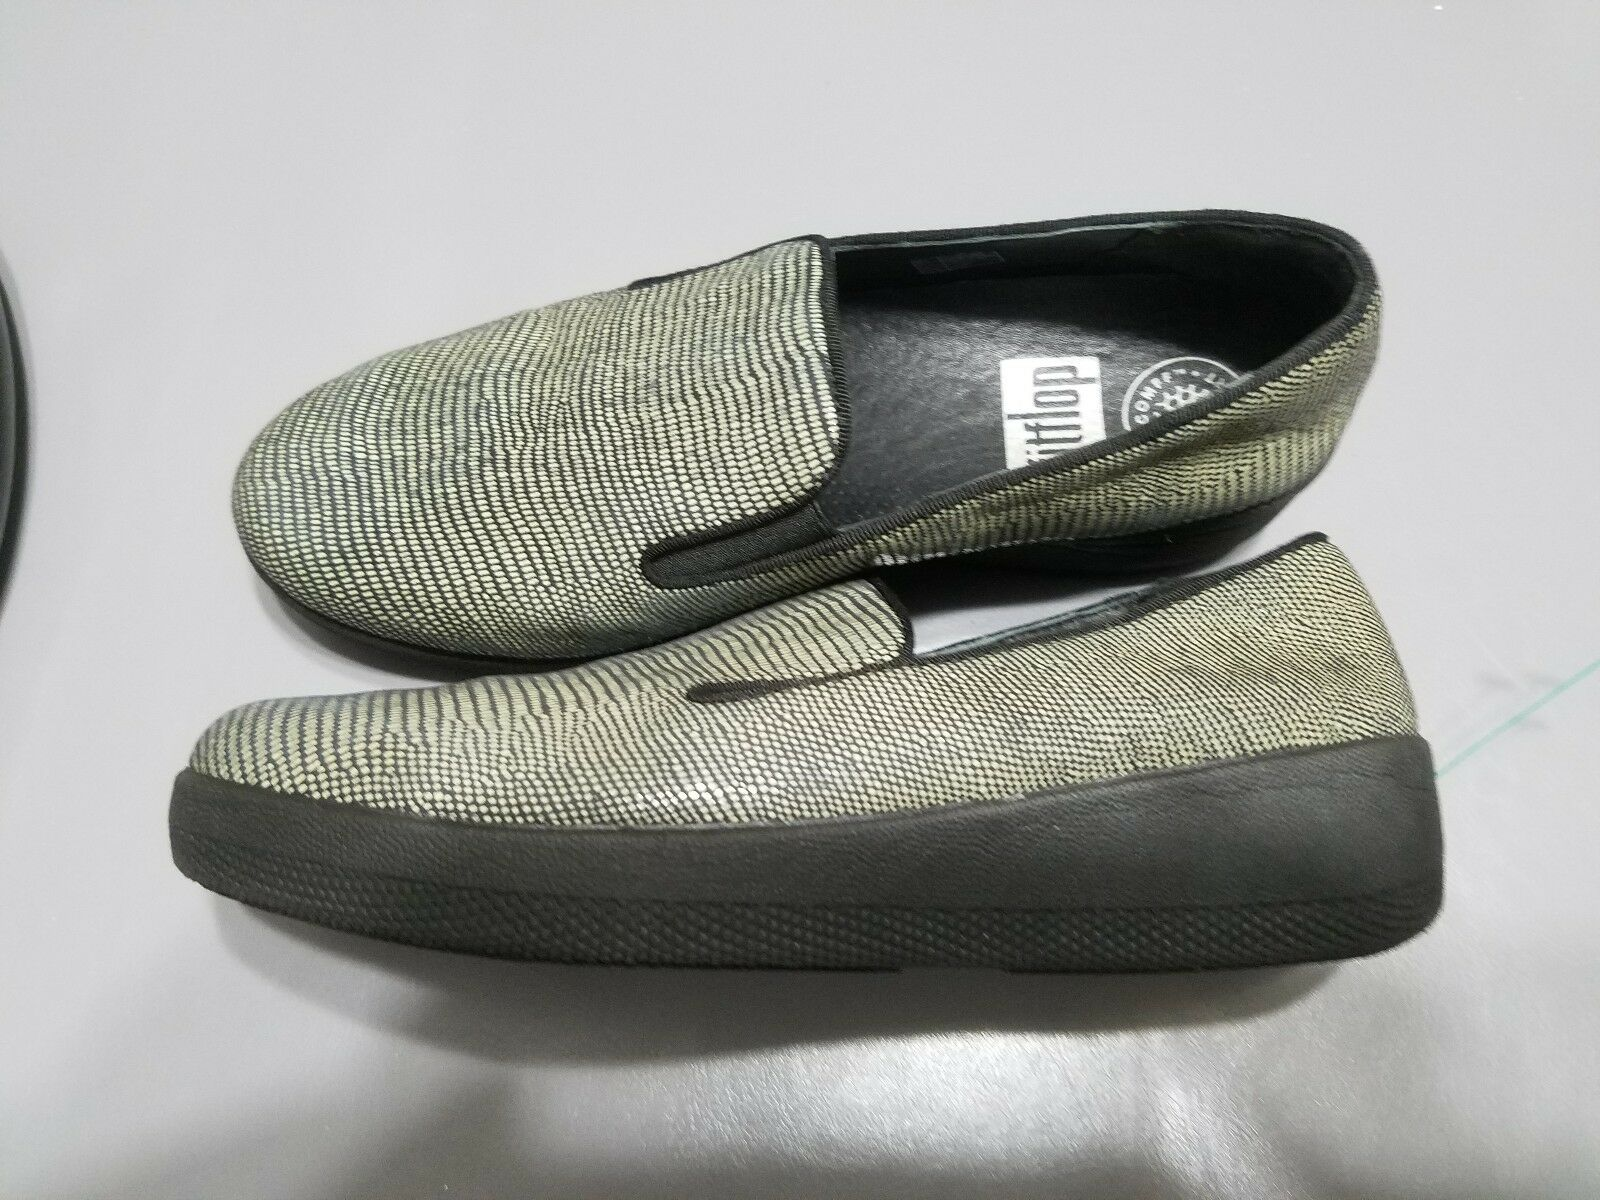 fitflop 5M sunshade shoe excellent condition  5M fitflop 842cfd